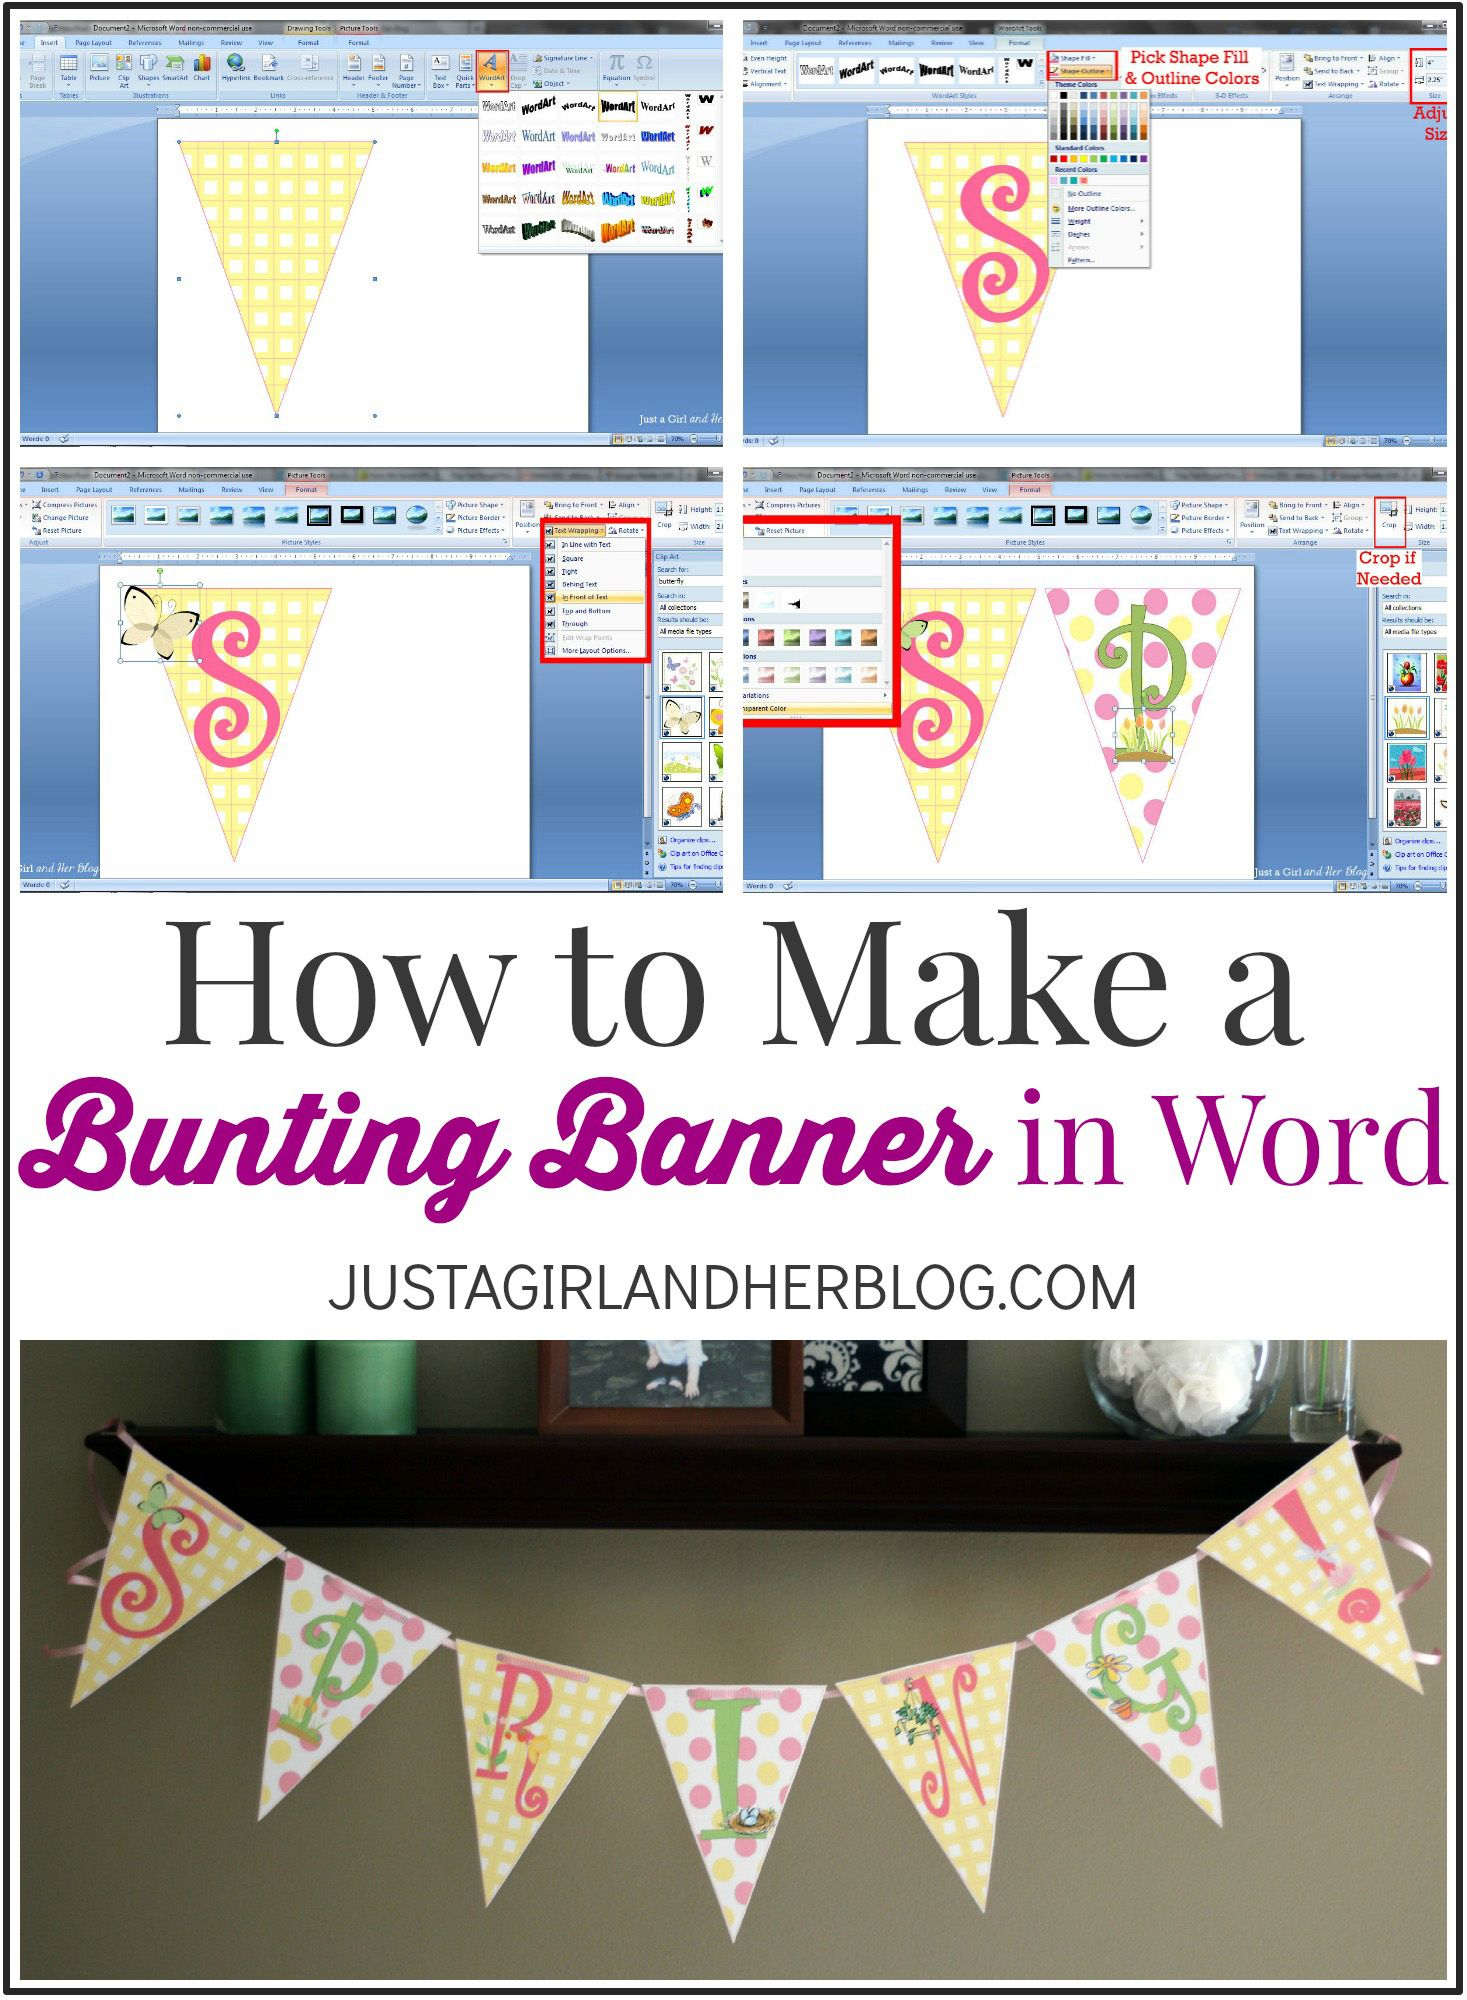 photograph regarding Justagirlandherblog titled How in direction of Crank out a Bunting Banner inside of Term with Clip Artwork Suggestions and